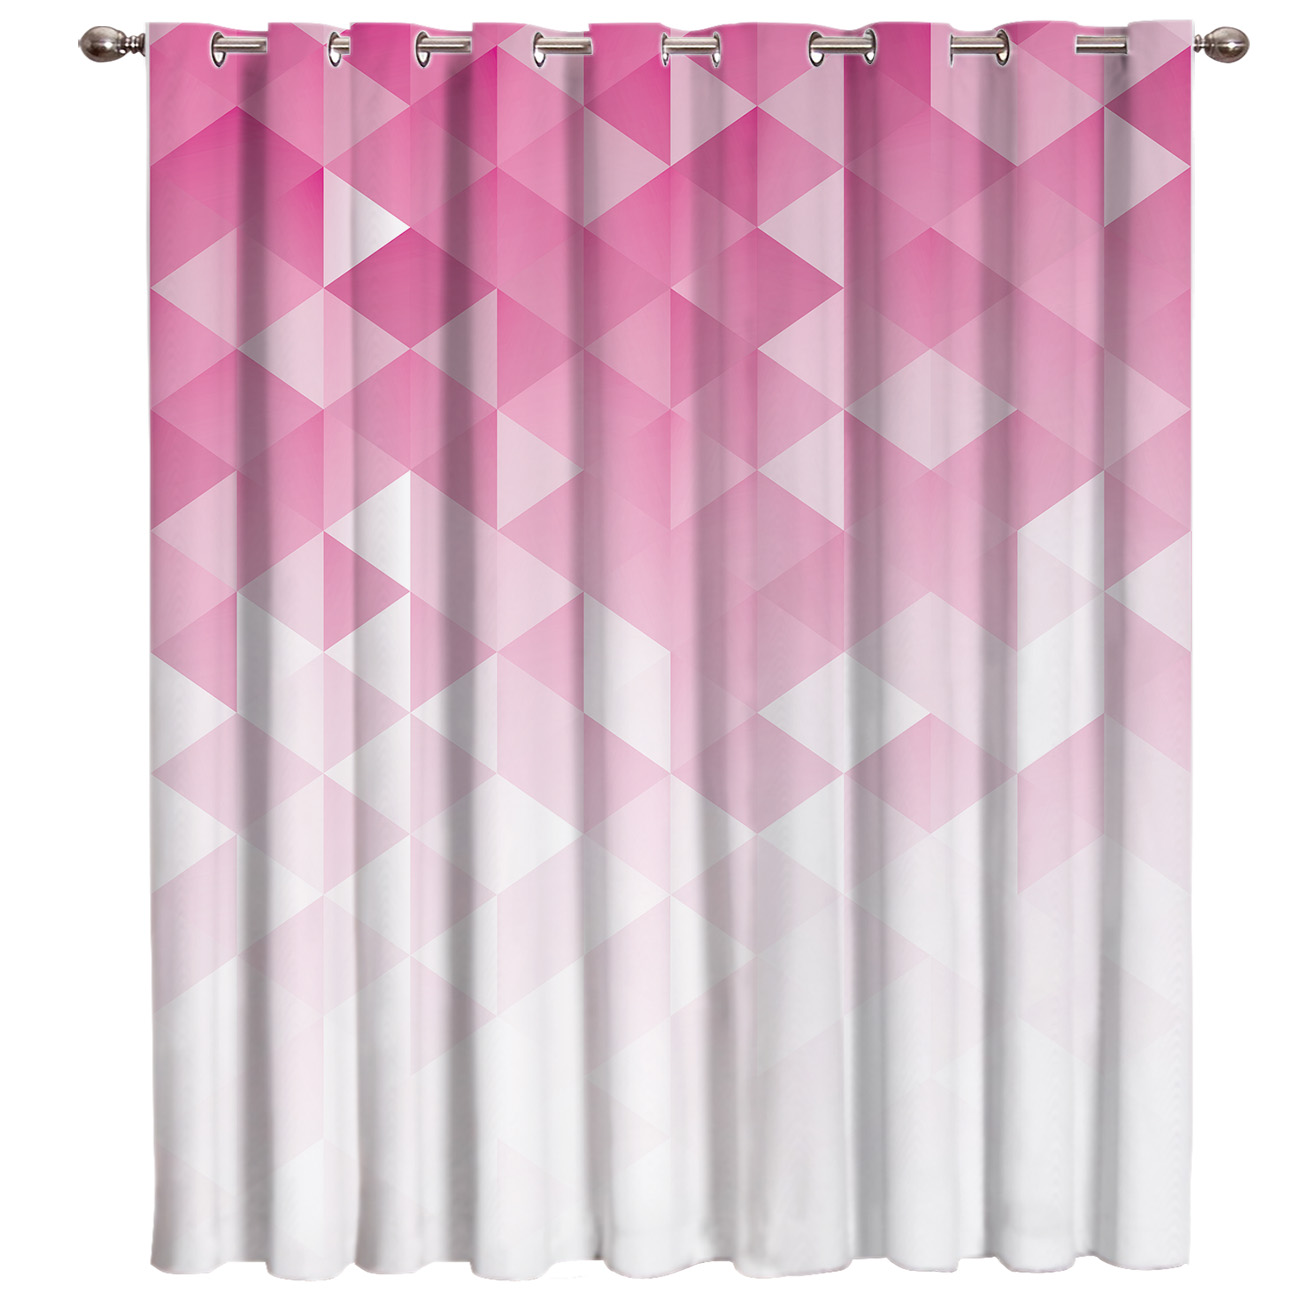 Geometric Gradient With Mosaic Triangle Pattern Window Curtains Dark Living Room Curtain Rod Curtains Bathroom Outdoor Drapes